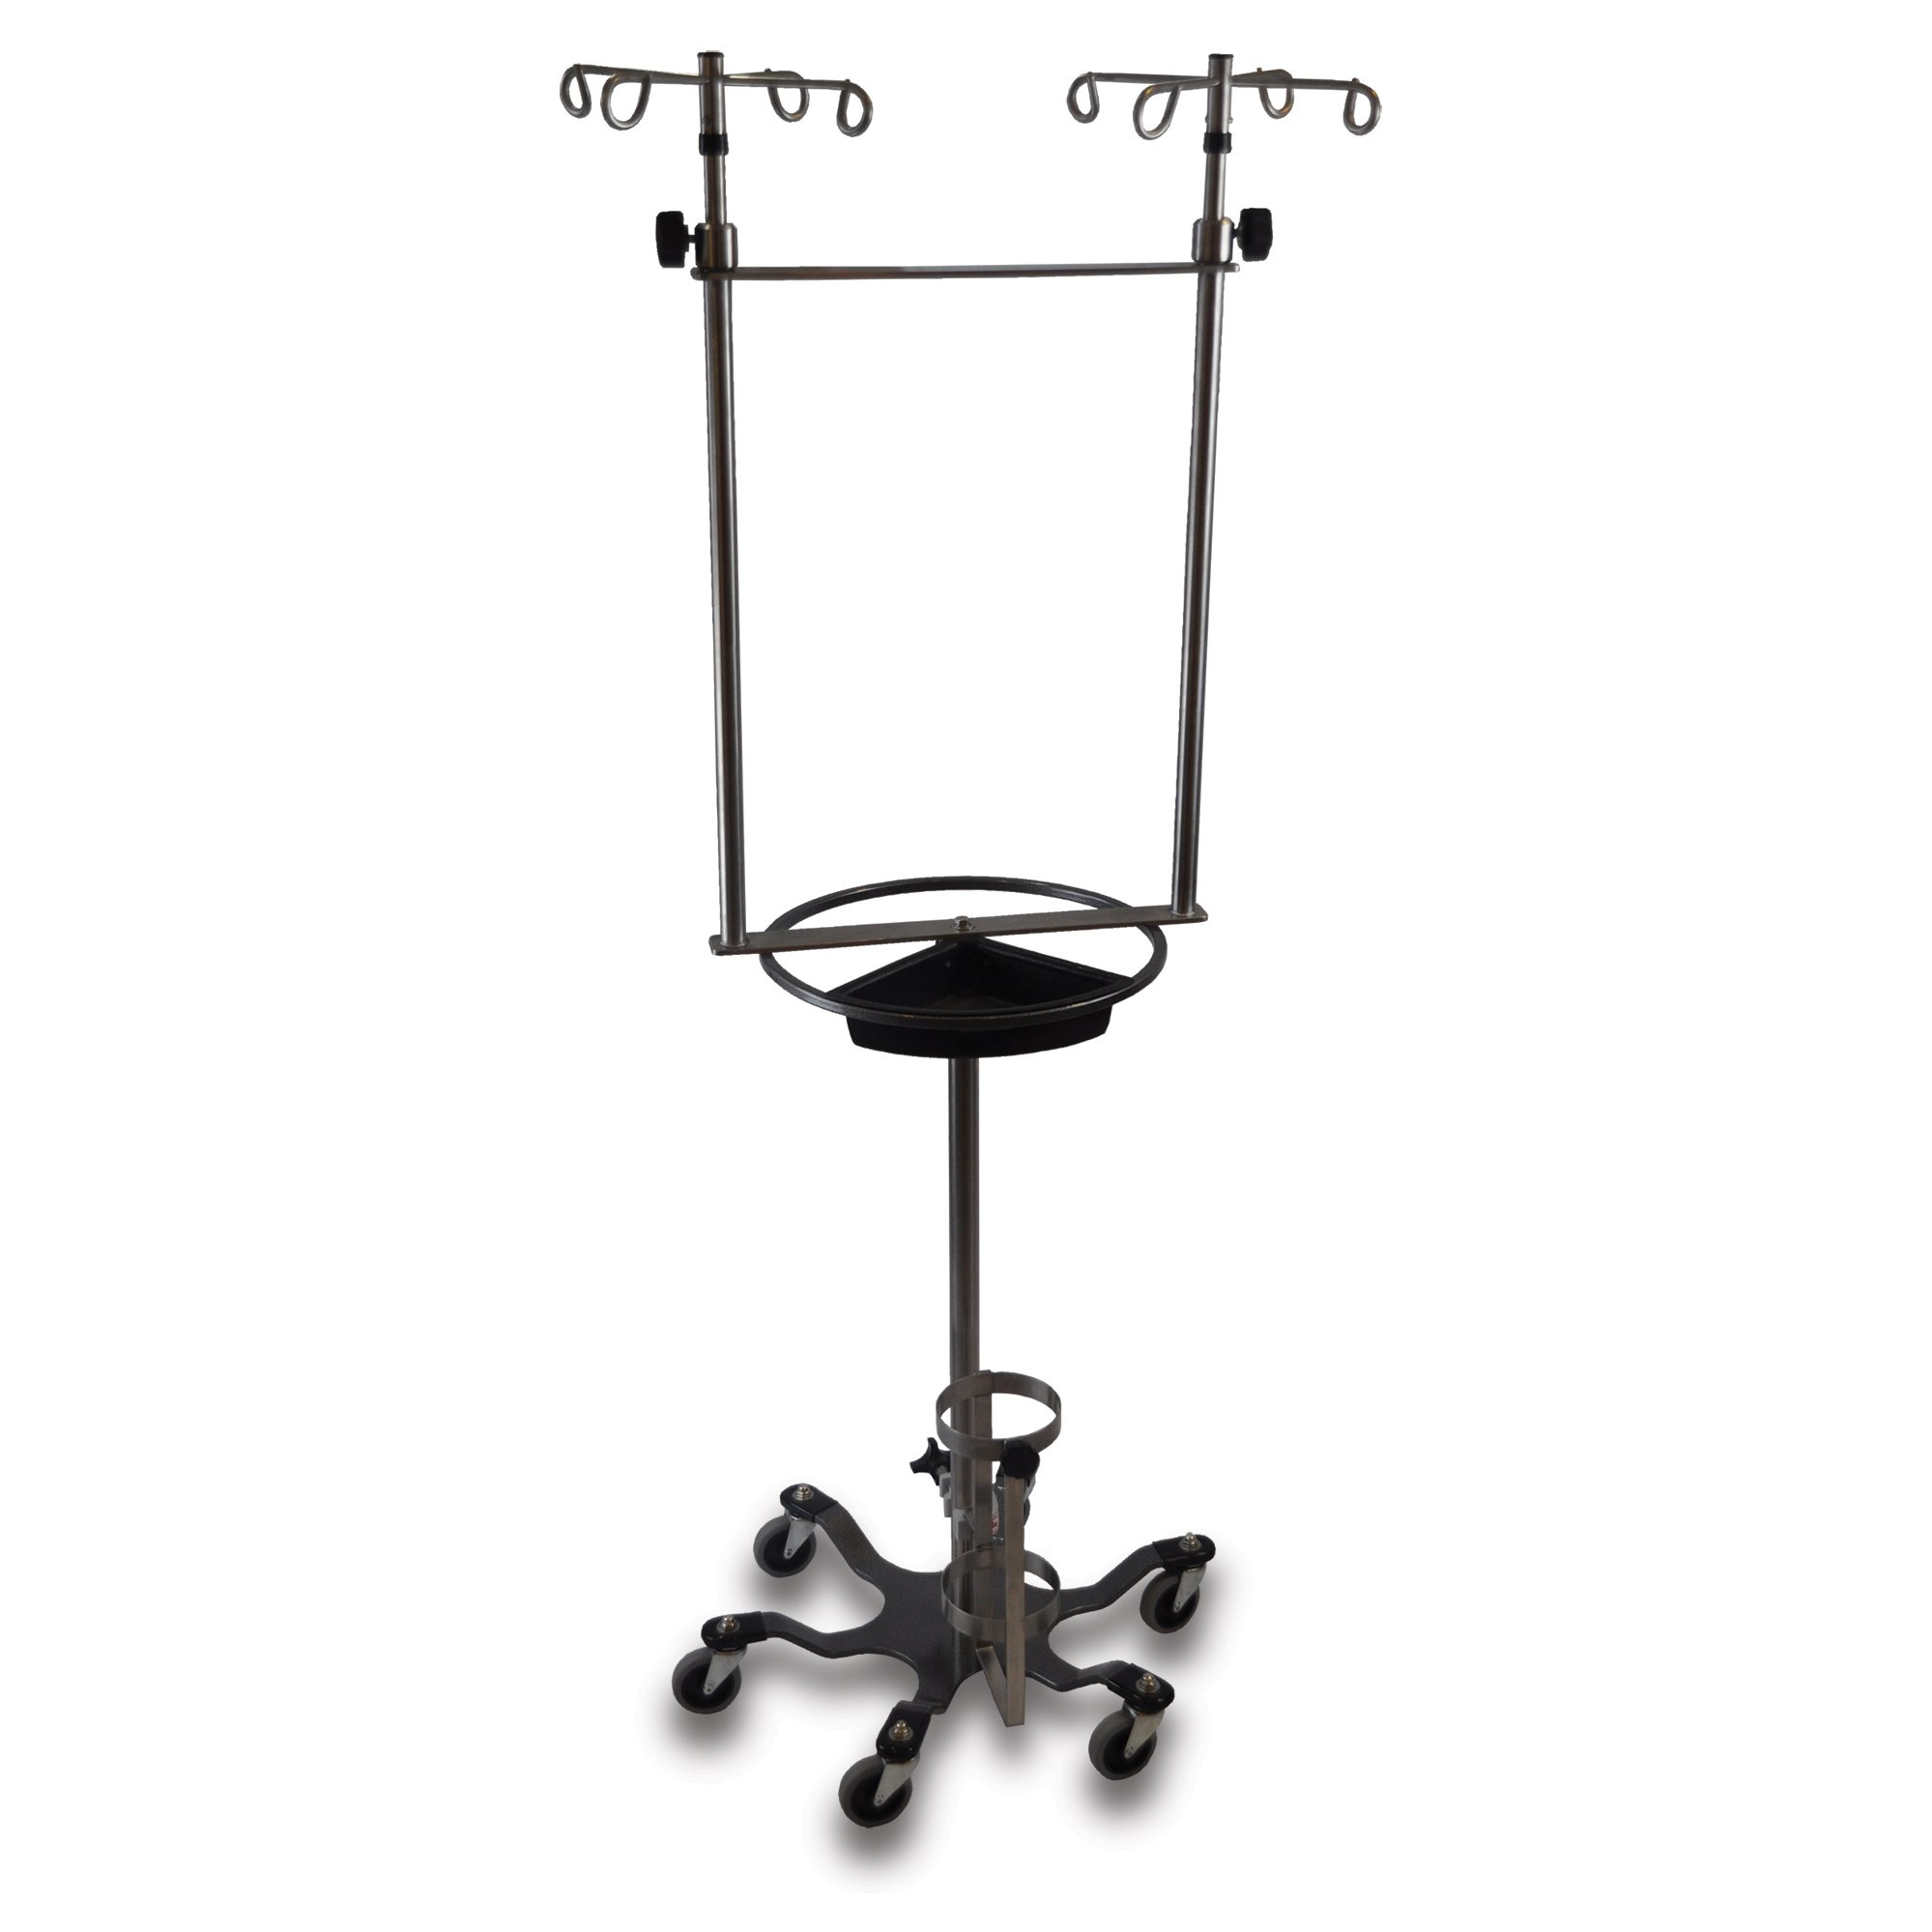 Stainless Steel Double IV Pole with Steering Wheel and Patient Tray